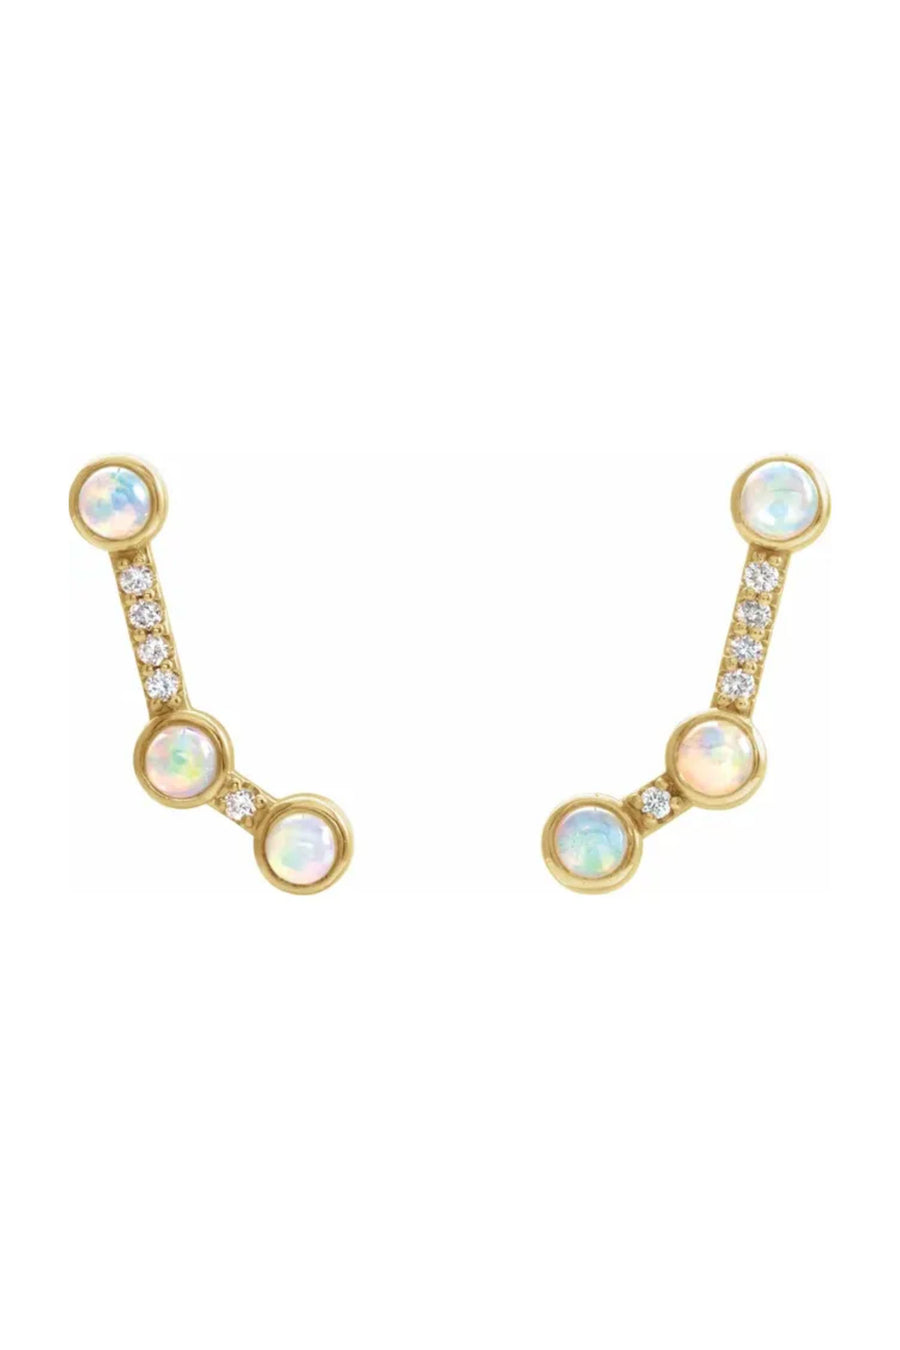 Constellation Climber Earrings - Ethiopian Opal & Diamonds - Pavilion